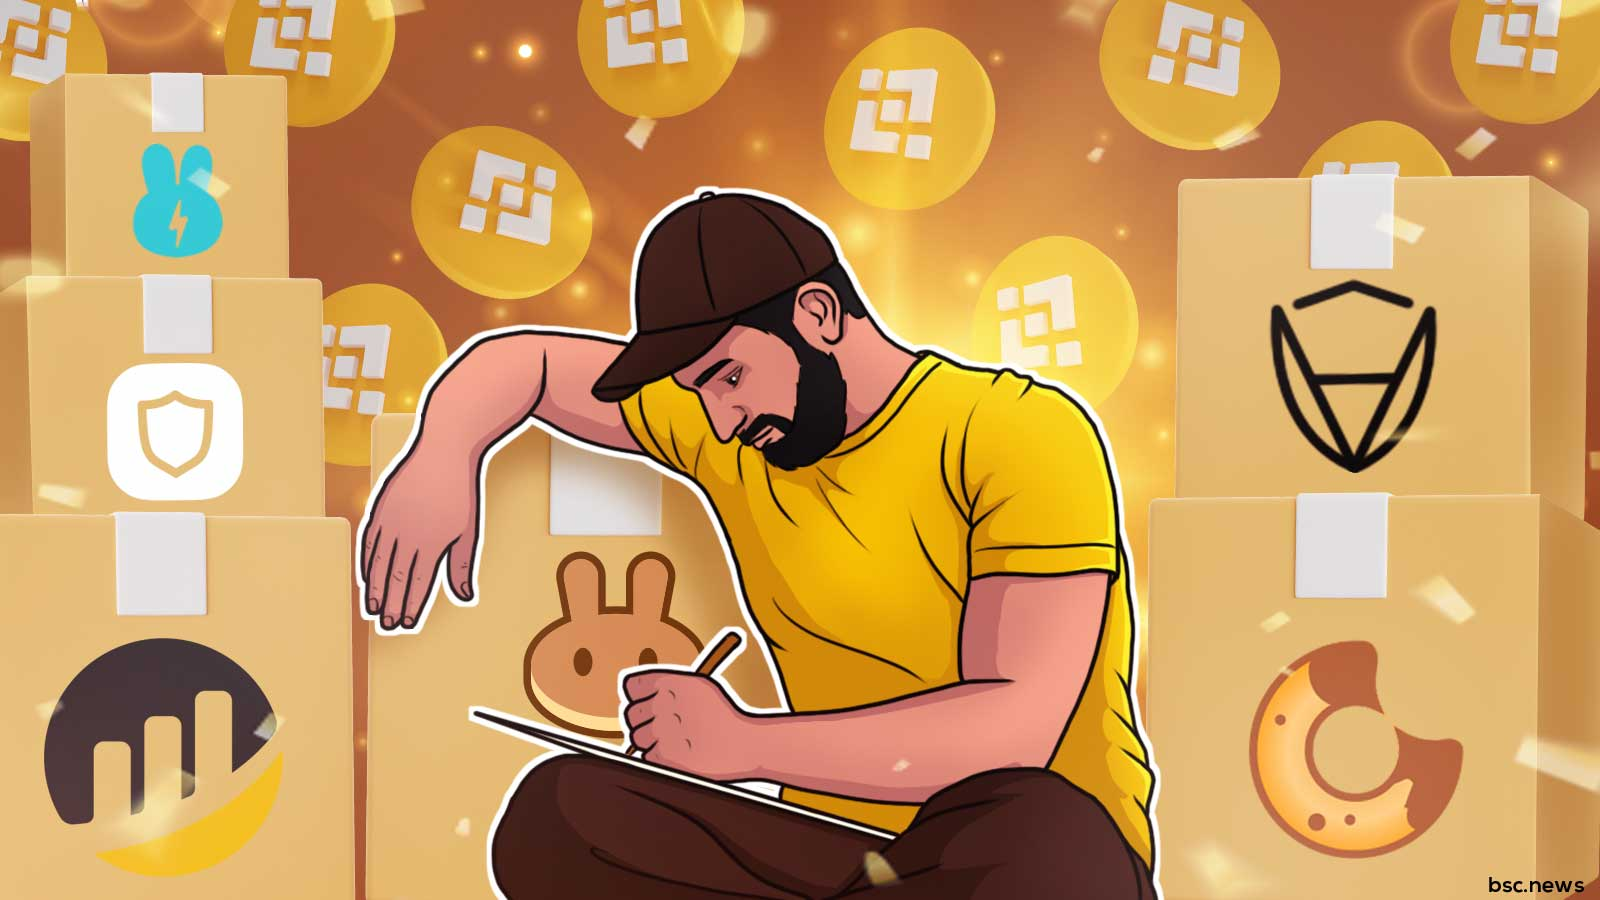 Binance Awards These 6 Binance Smart Chain Protocols as the Projects of the Year